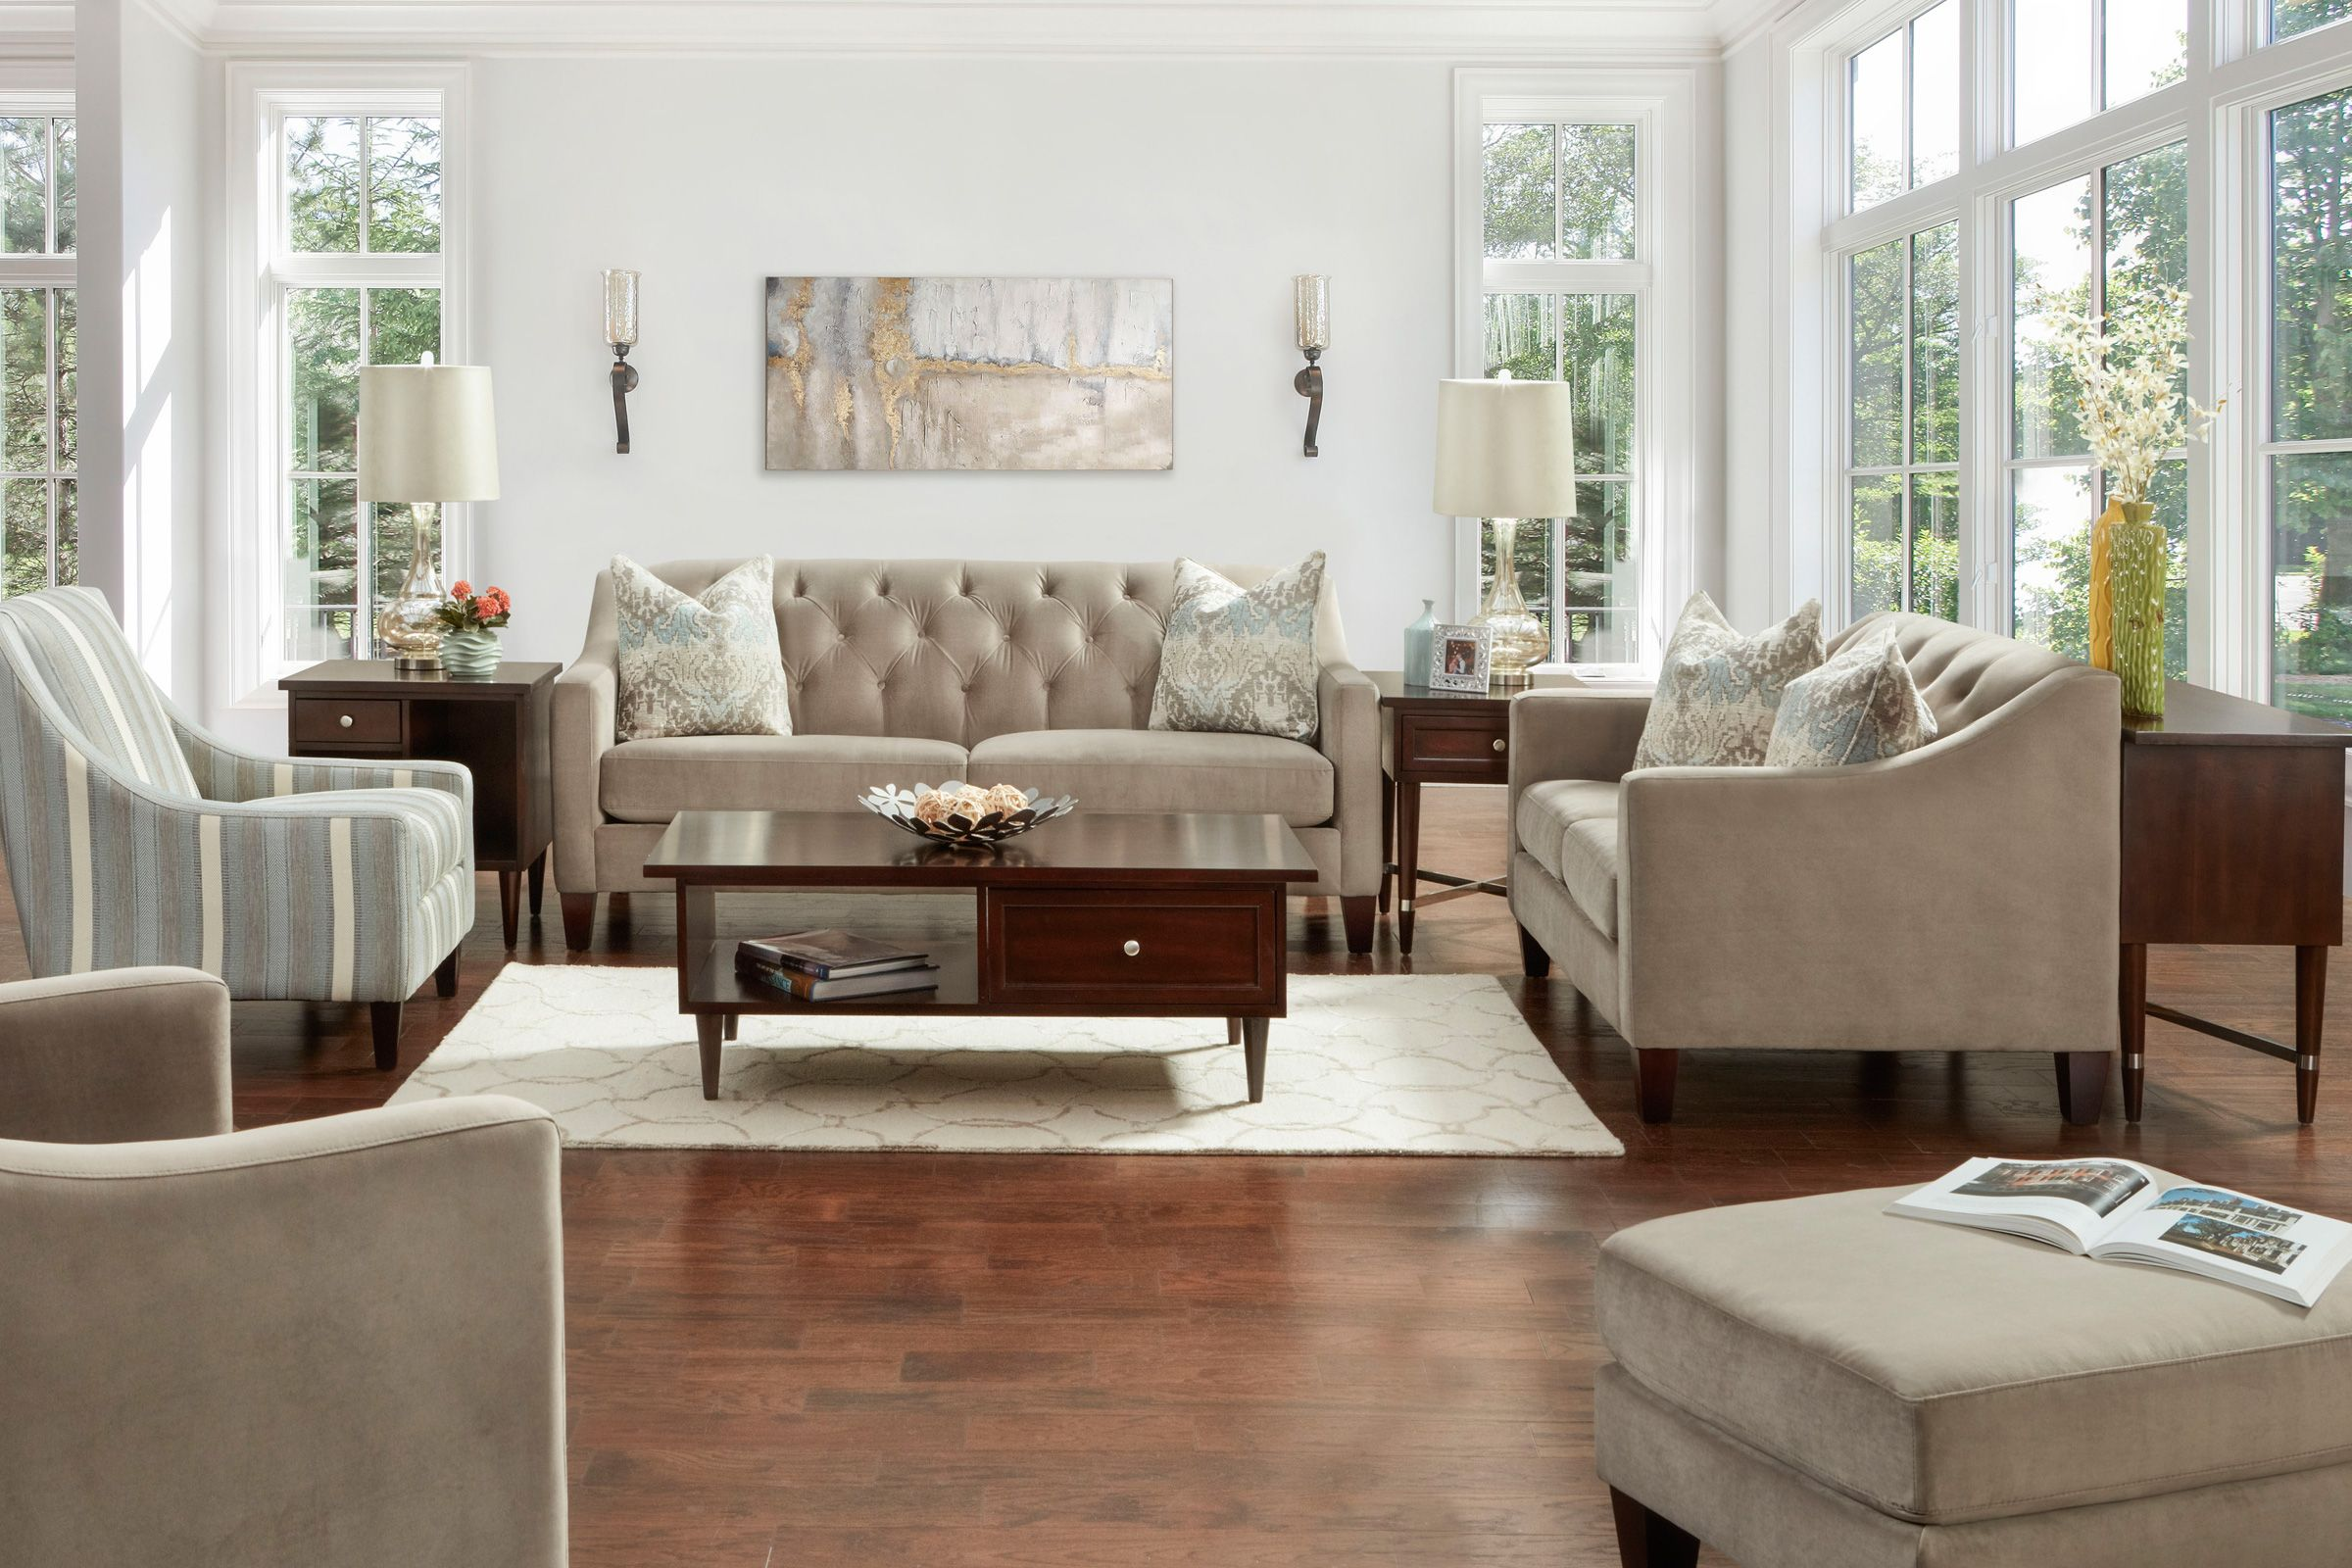 Astounding Nina Living Room Collection Andrewgaddart Wooden Chair Designs For Living Room Andrewgaddartcom